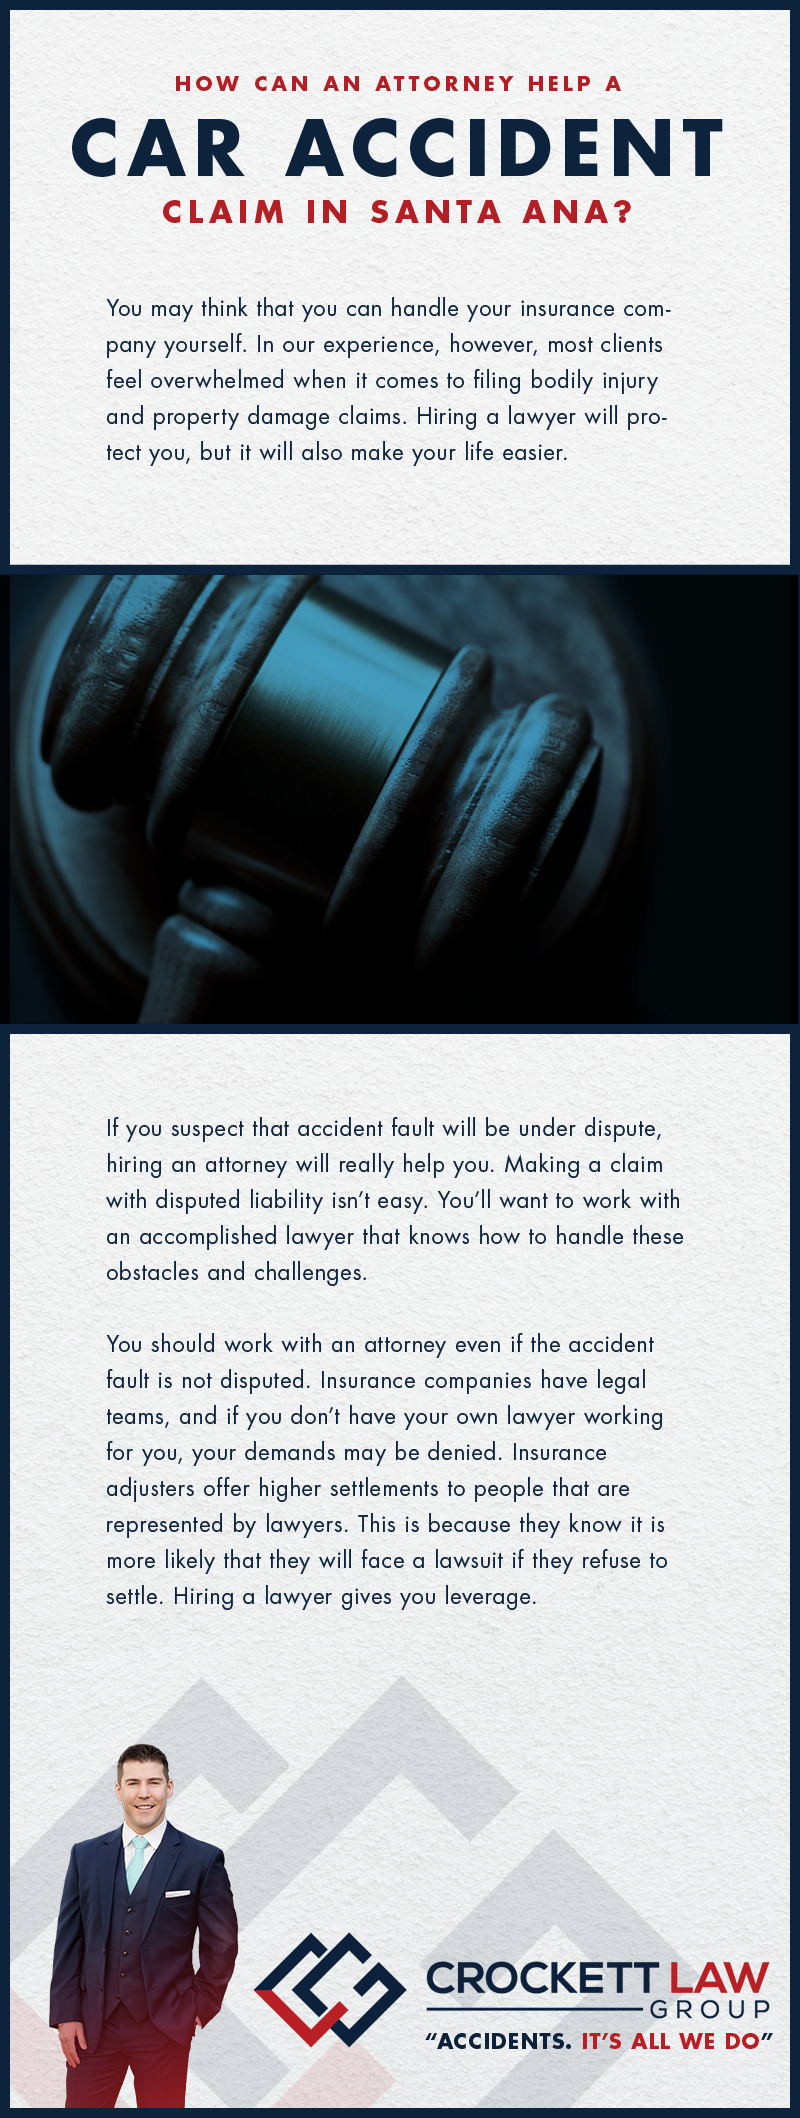 How Can An Attorney Help A Car Accident Claim In Santa Ana?